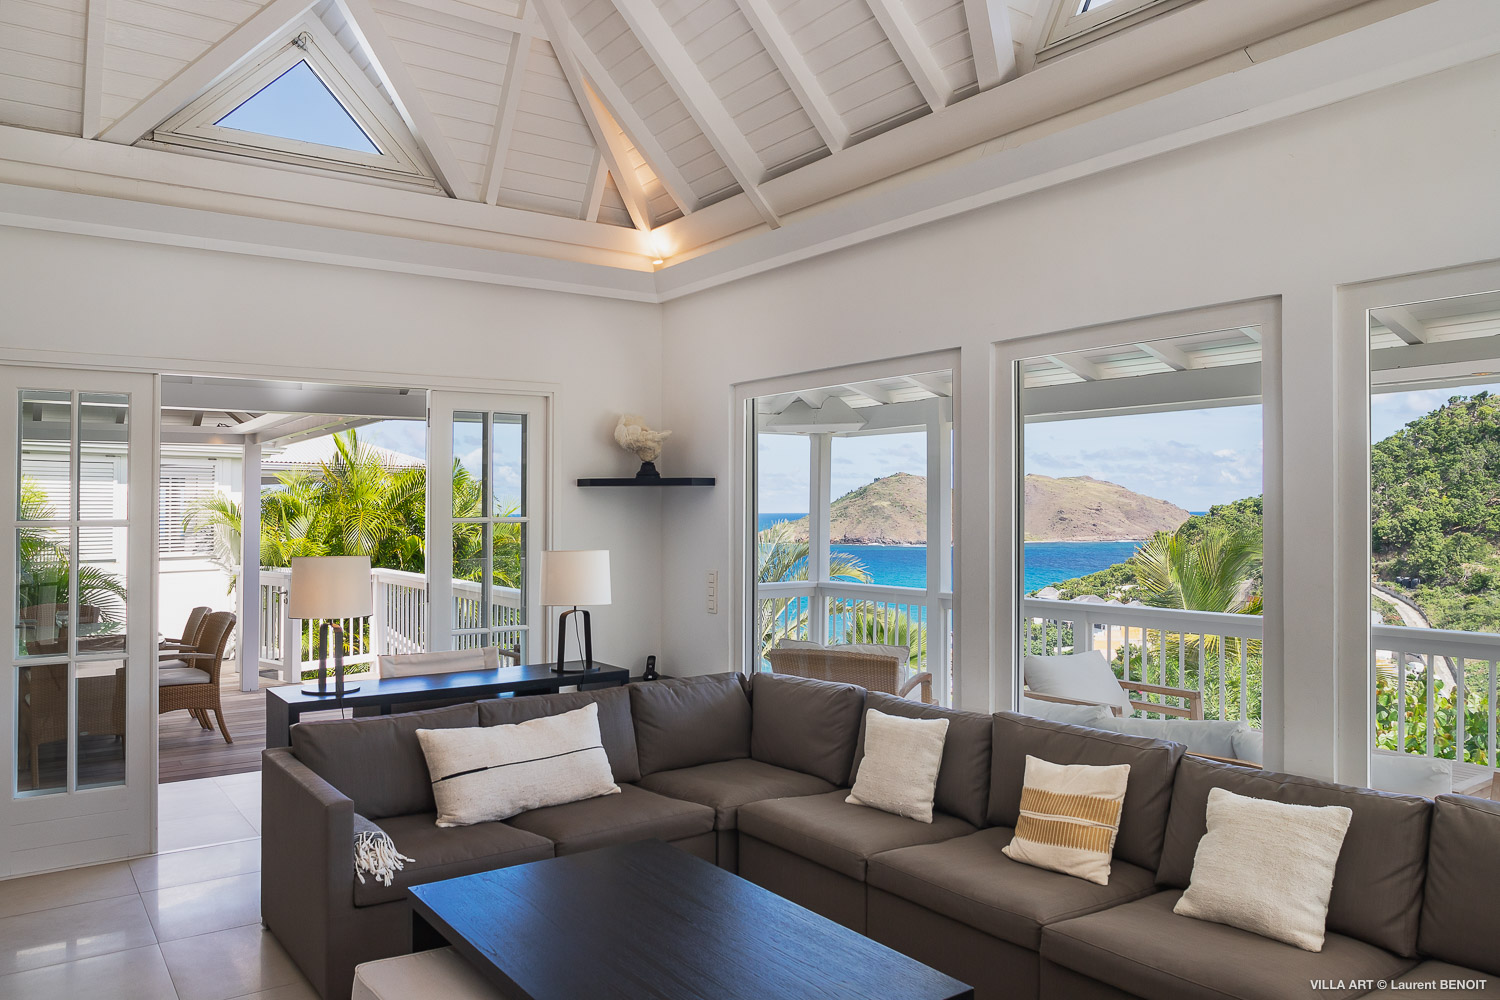 Villa Art - 3 Bedroom Villa for Rent in Flamands St Barth with Heated Pool - Living room